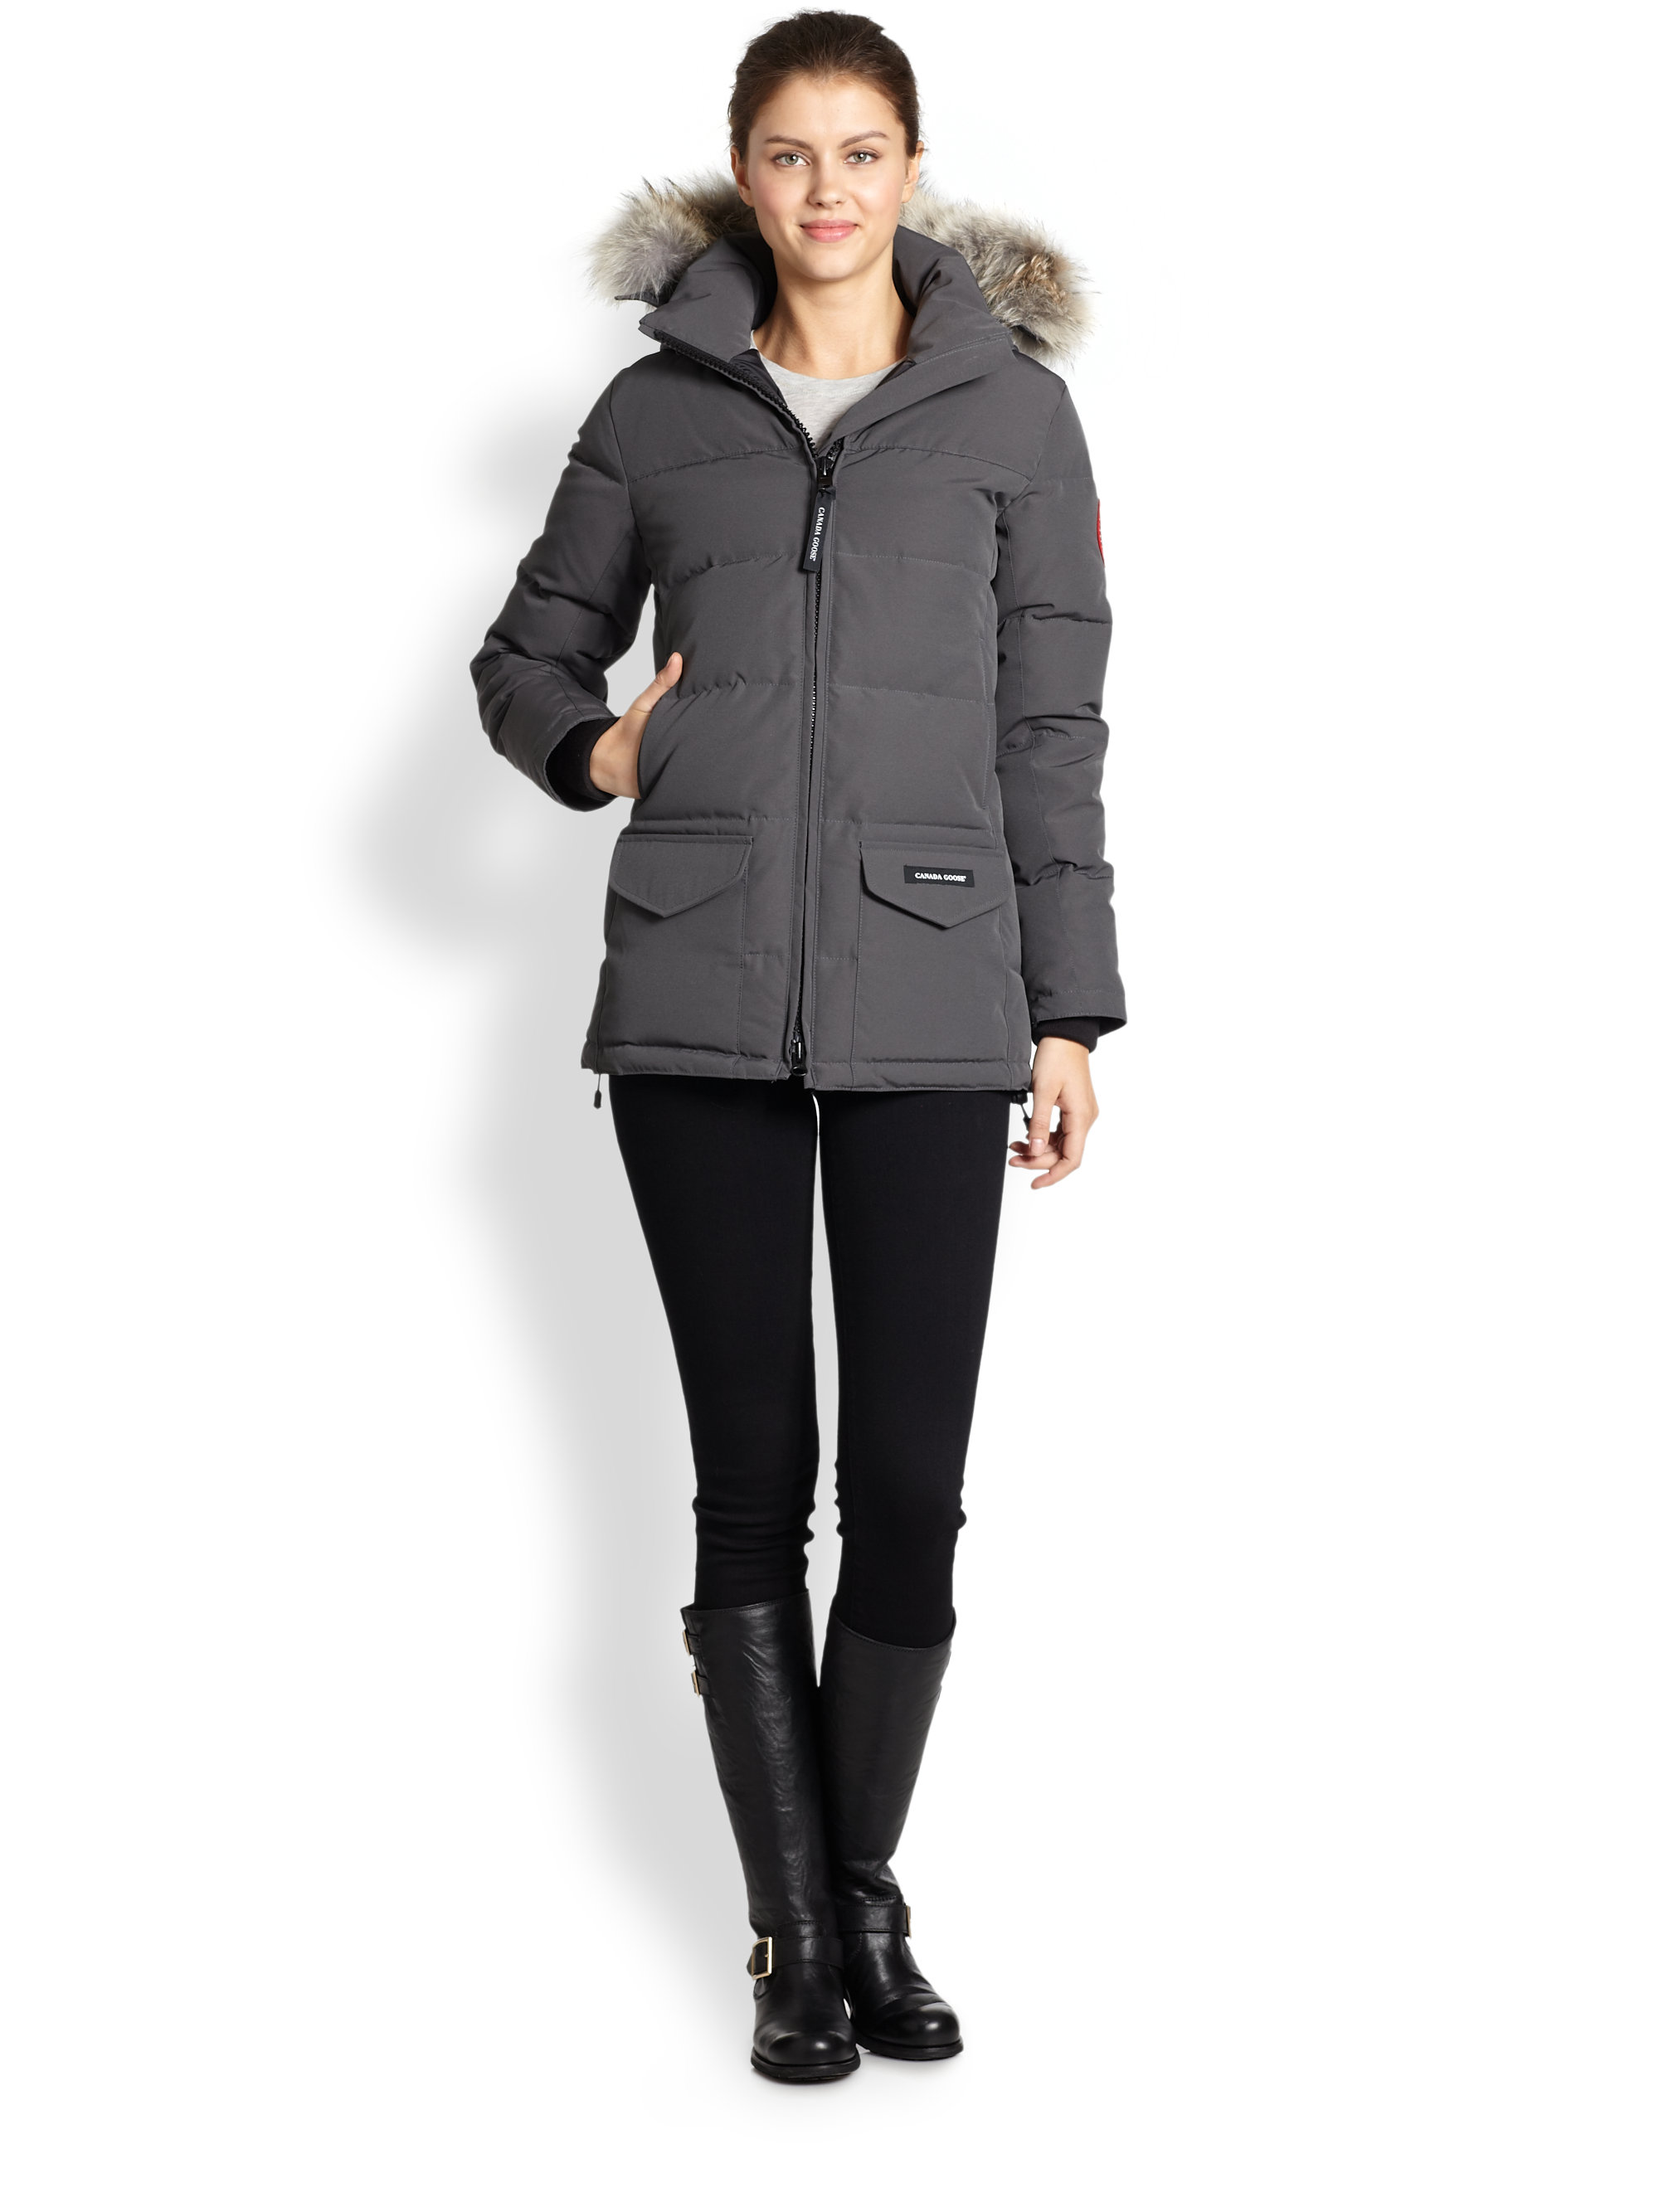 Canada Goose vest replica price - Canada goose Fur-trimmed Down-filled Solaris Puffer Jacket in Gray ...